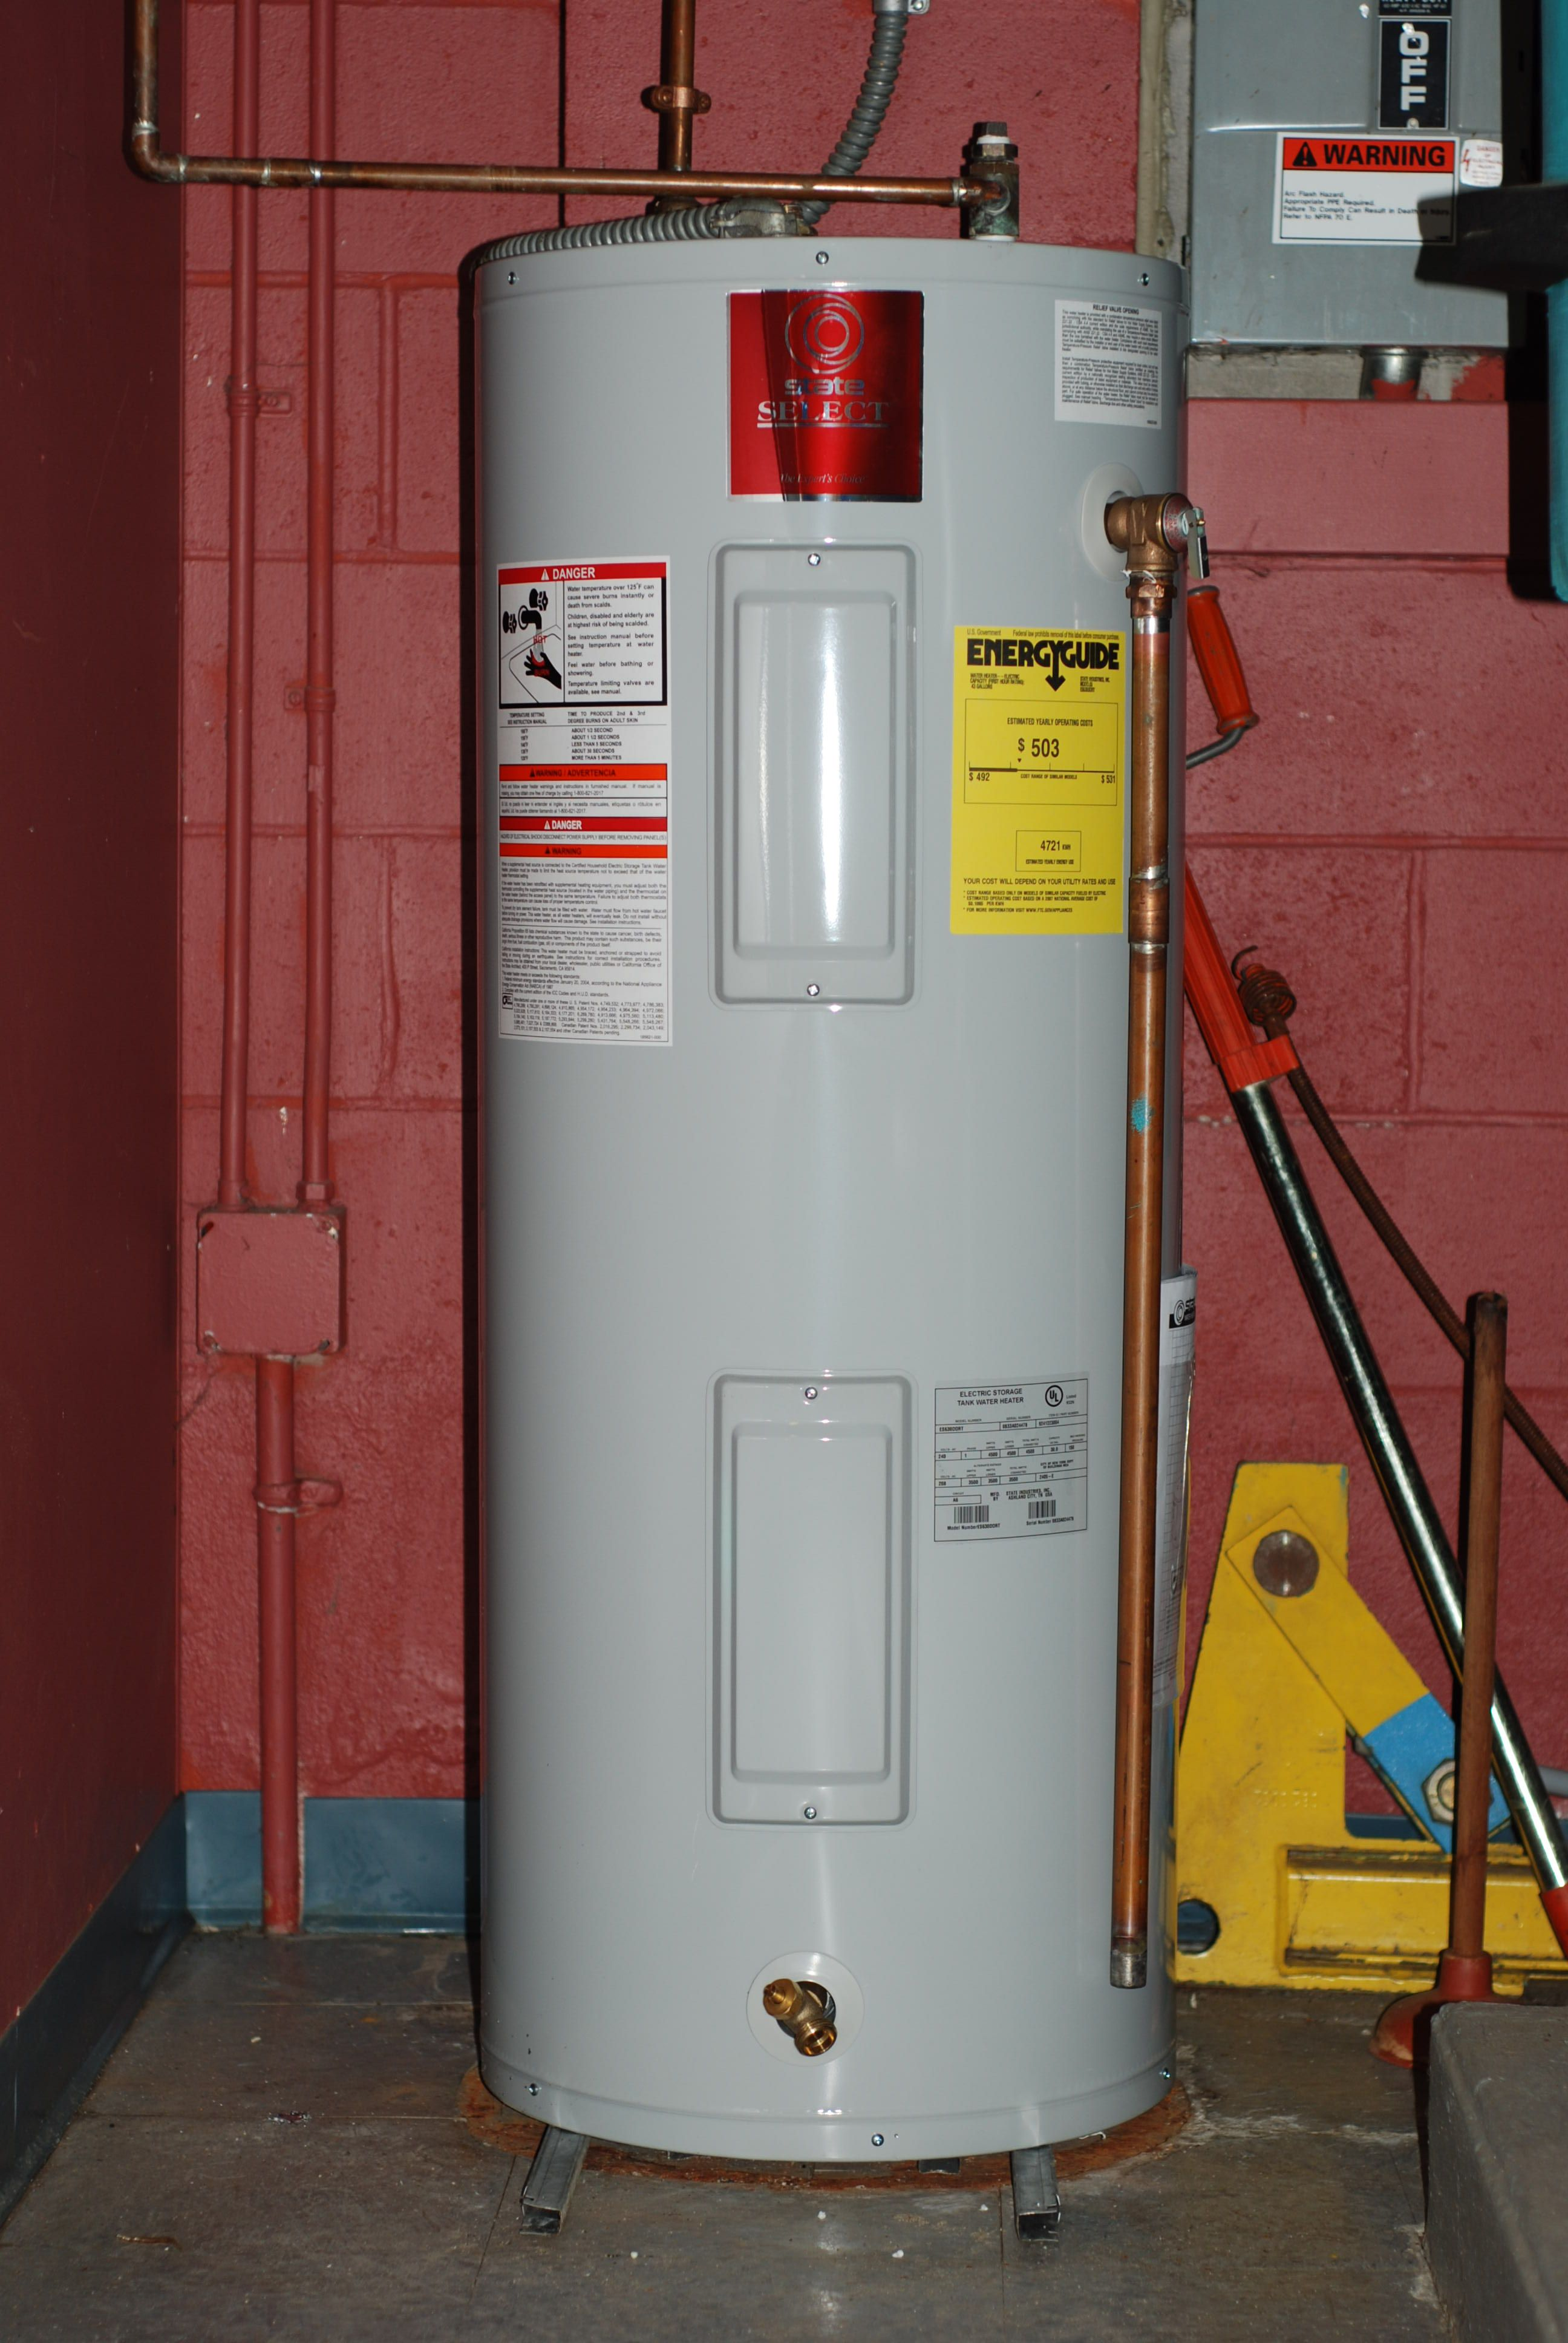 How To Get Emergency Drinking Water From A Water Heater Water Heater Water Heater Repair Electric Water Heater